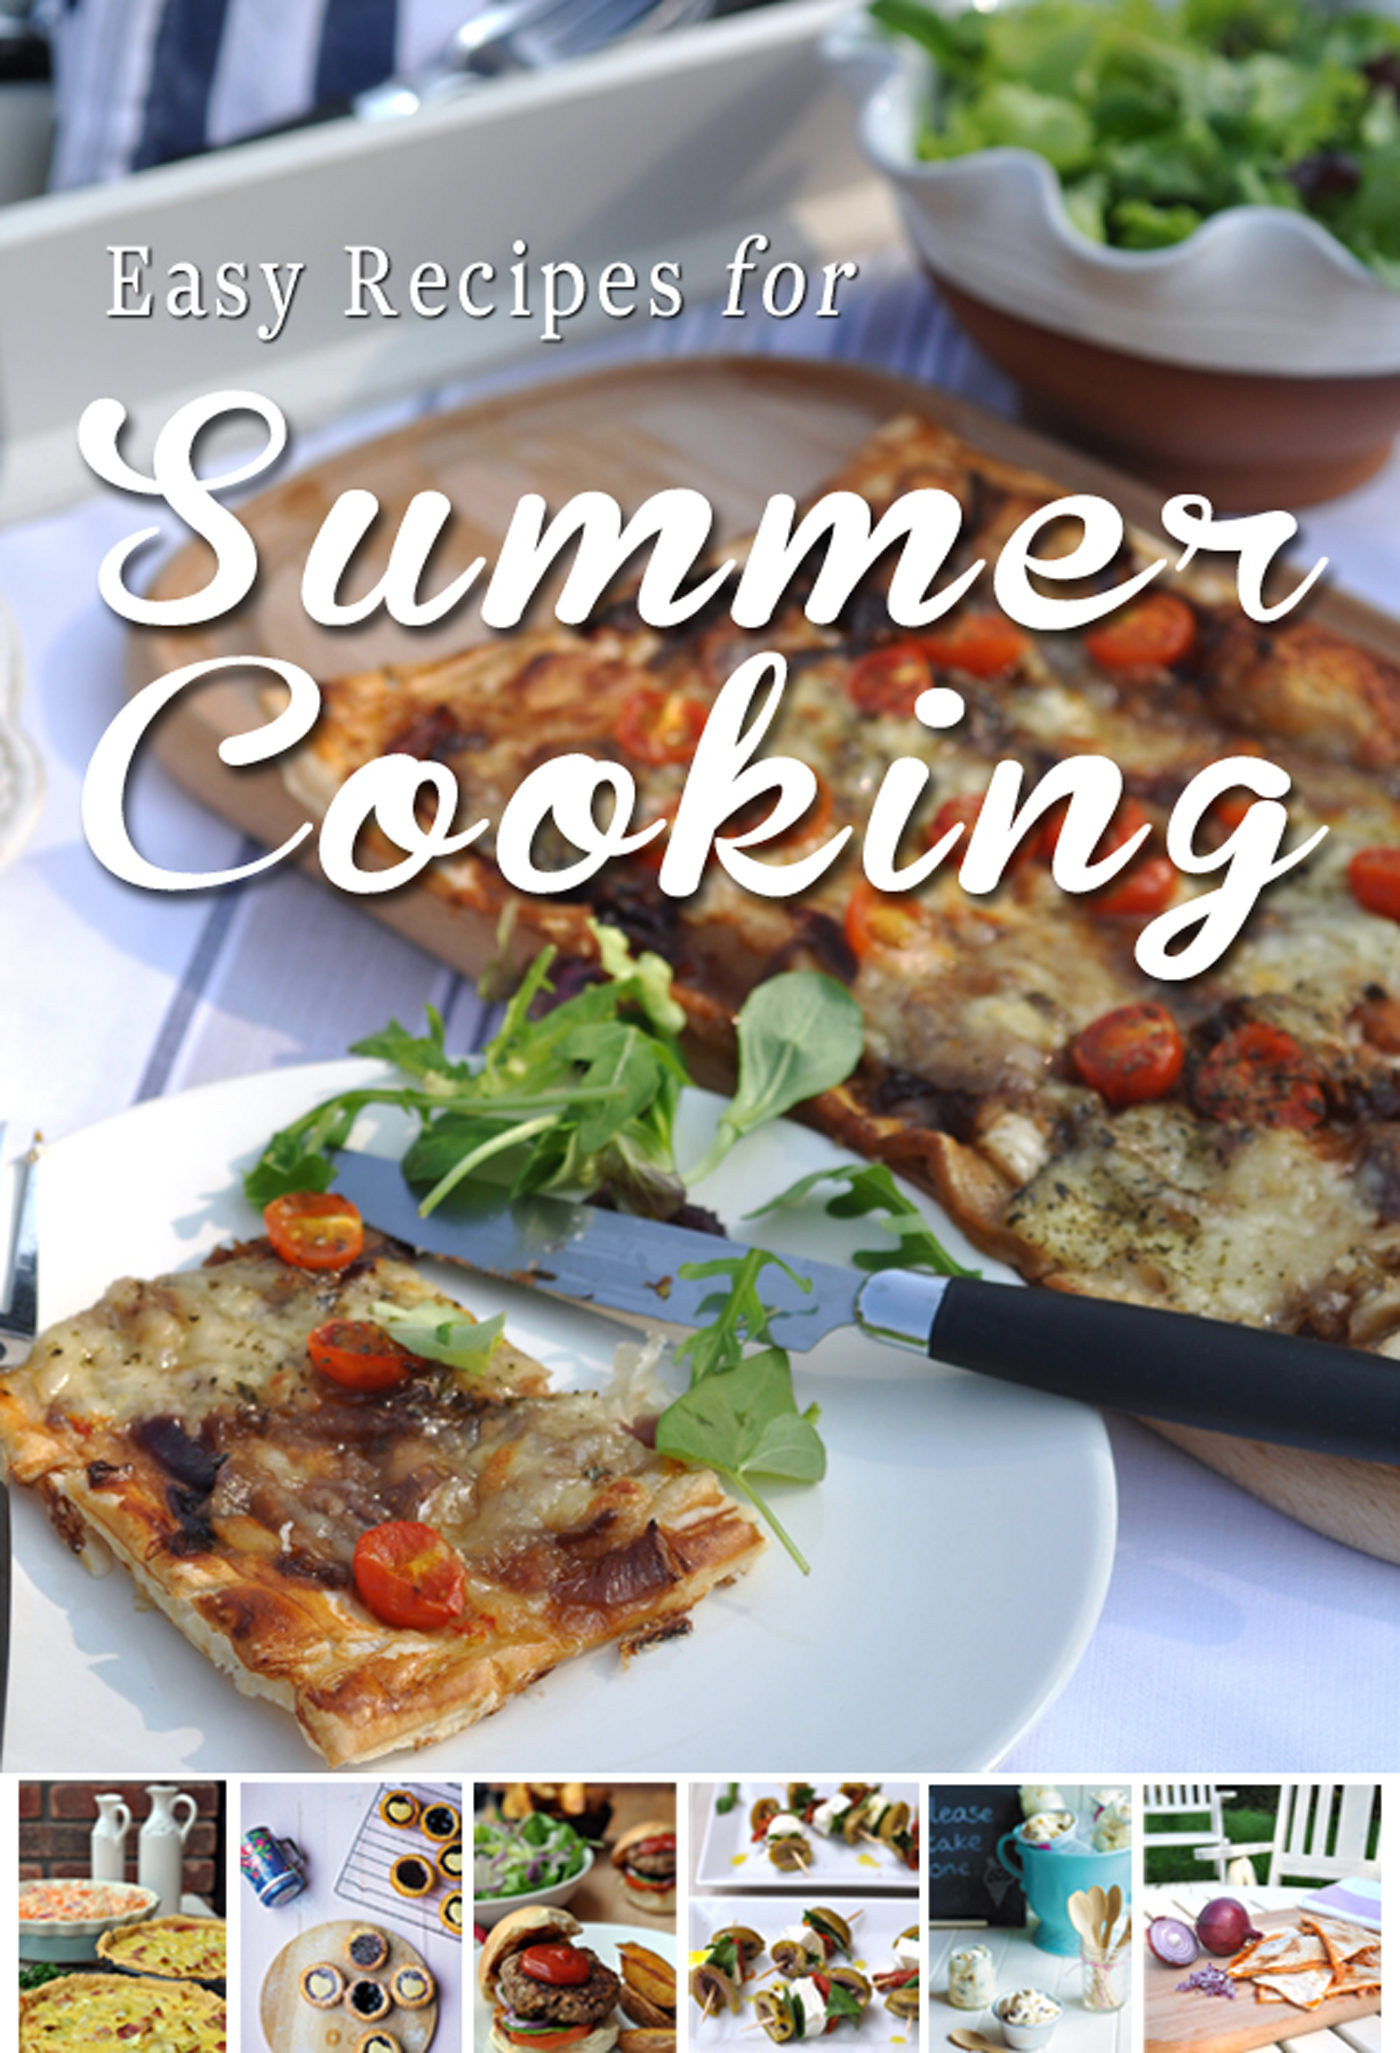 Easy recipes for summer cooking ebook donal skehan descargar easy recipes for summer cooking ebook donal skehan rosanne hewitt cromwell forumfinder Choice Image